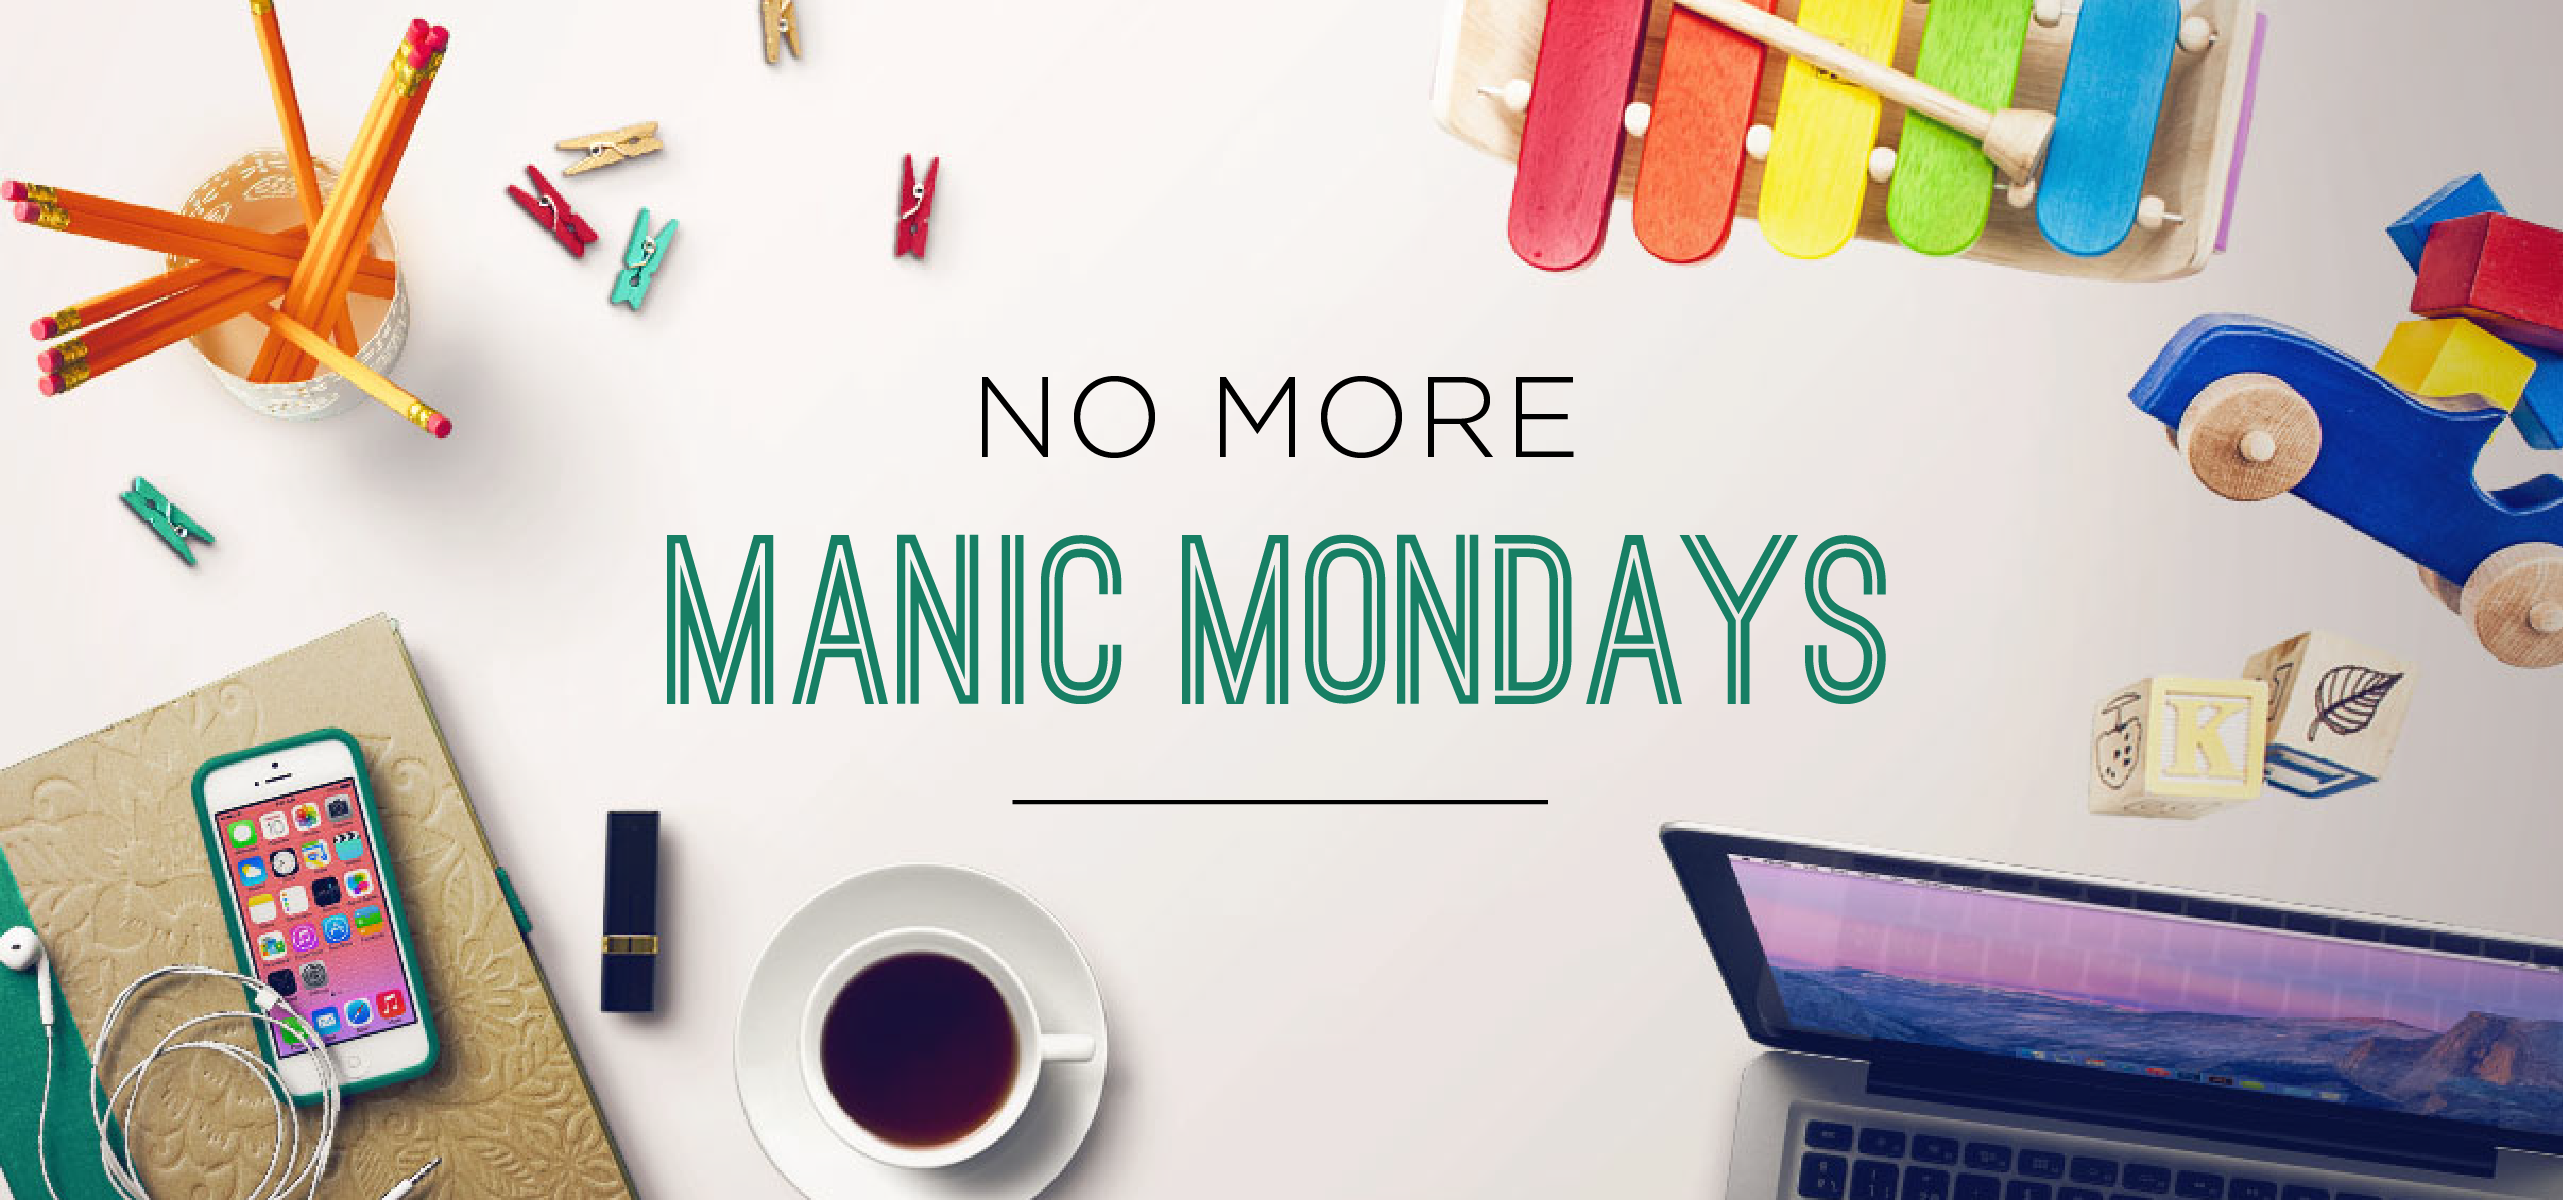 No More Manic Mondays Header 1-01